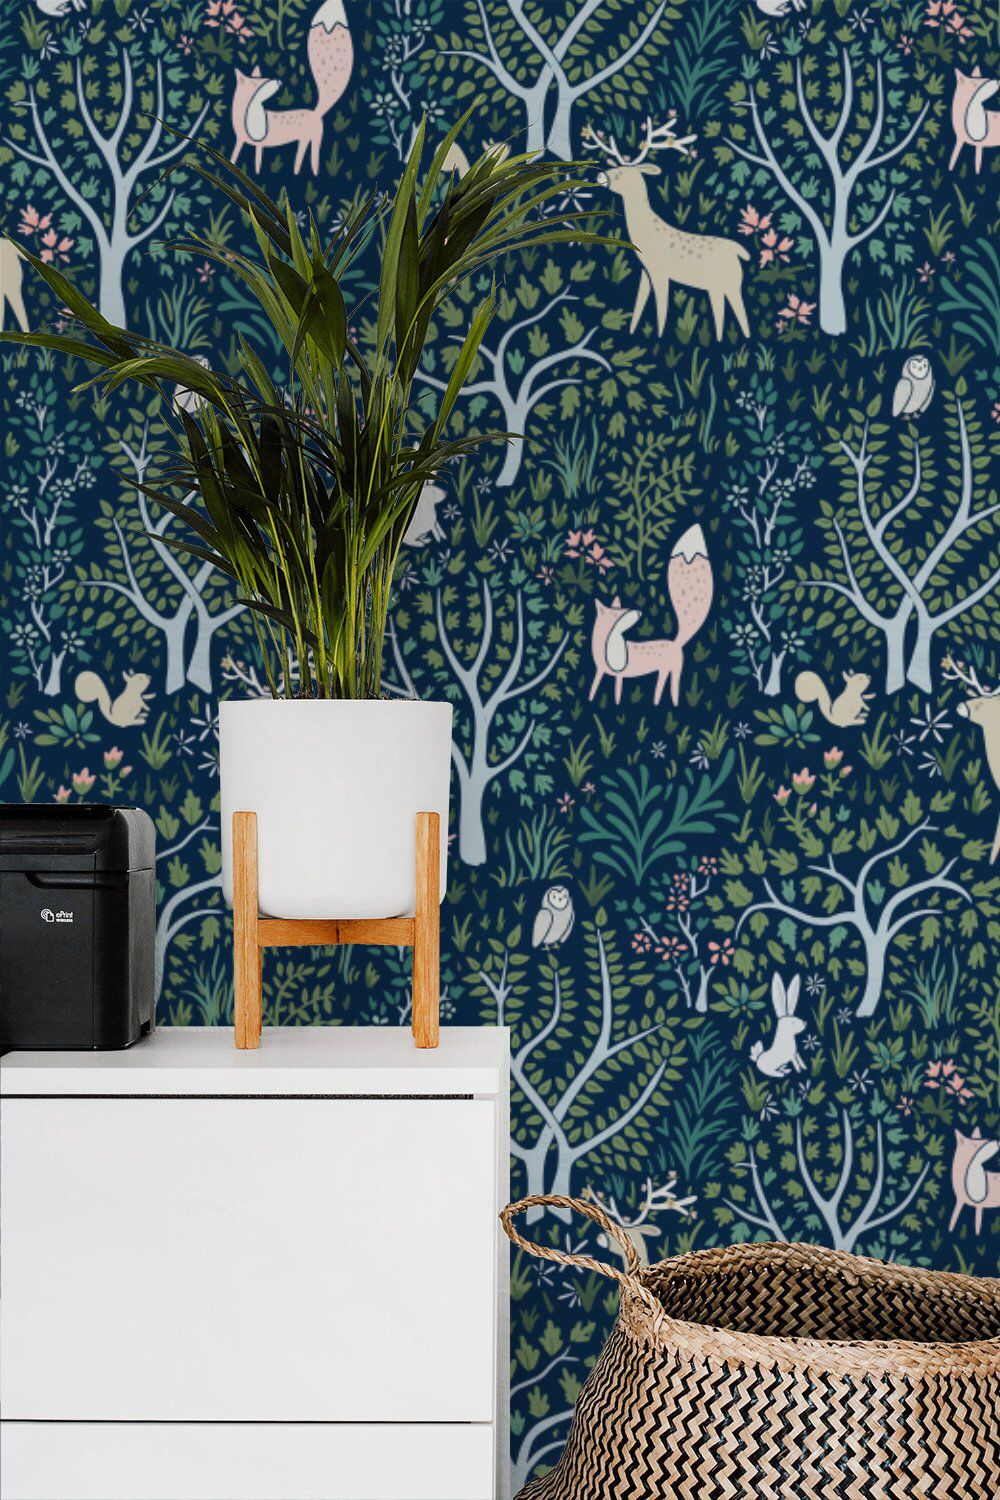 Woodland Forest Navy Removable Wallpaper 507 Etsy In 2021 Removable Wallpaper Nursery Forest Wallpaper Nursery Wallpaper